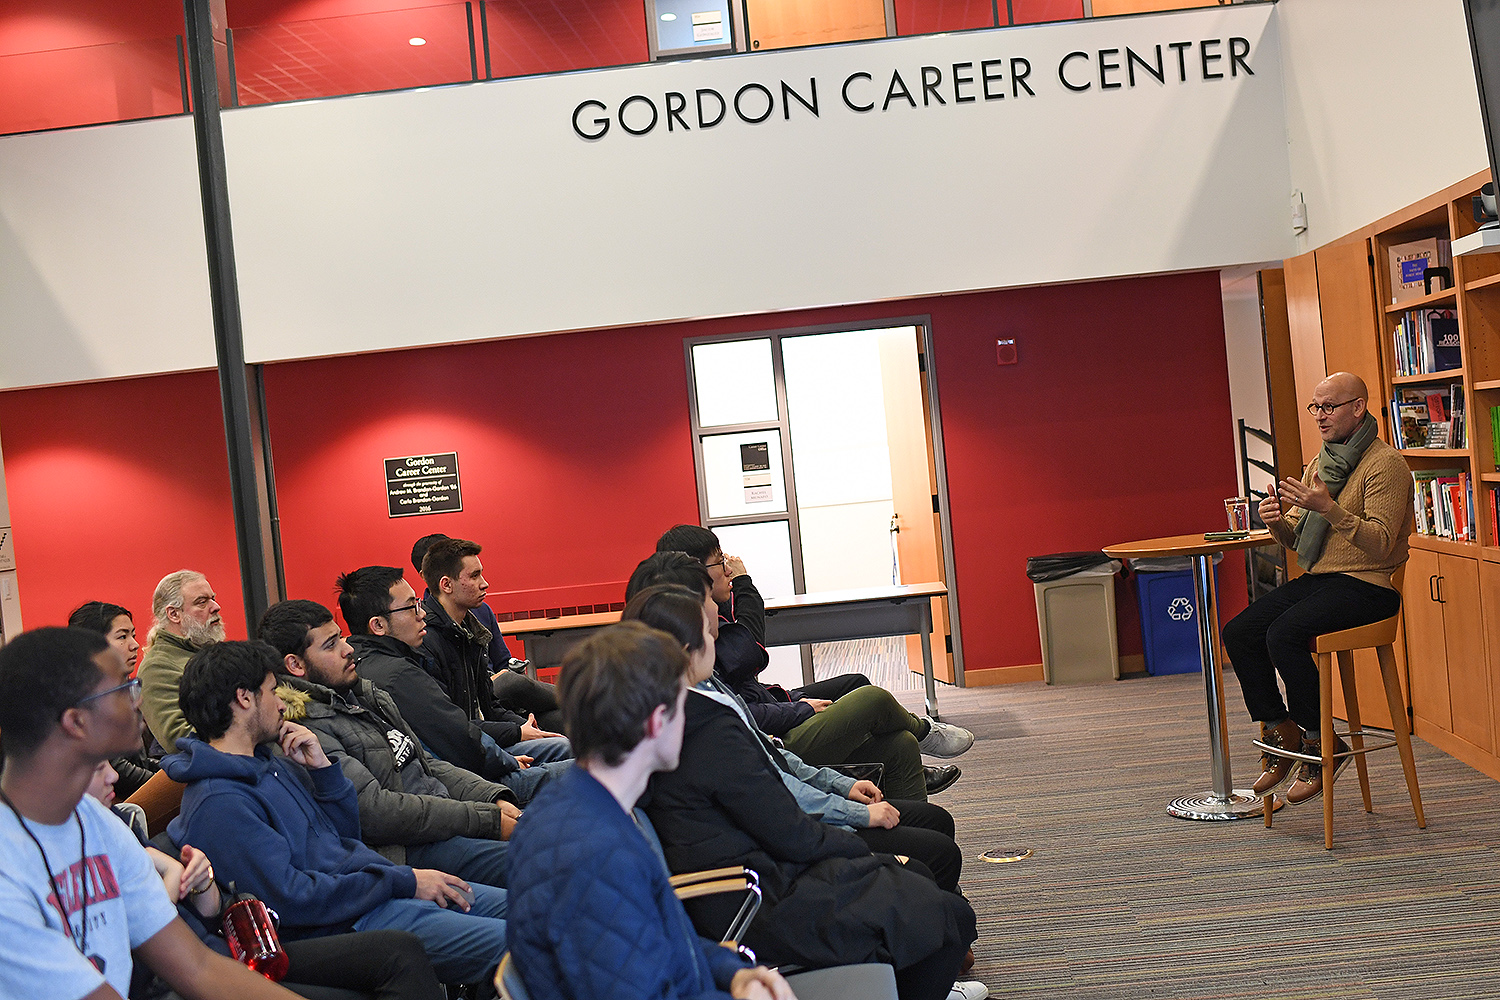 On Feb. 8, Tomer Rothschild '94 returned to campus to speak to students at the Gordon Career Center about his entrepreneurial path. Rothschild, who graduated from Wesleyan with a degree in philosophy, is the co-founder of Elite Scholars of China (ESC), an agency that aims to educate China's top high school students about their undergraduate options in the United States.